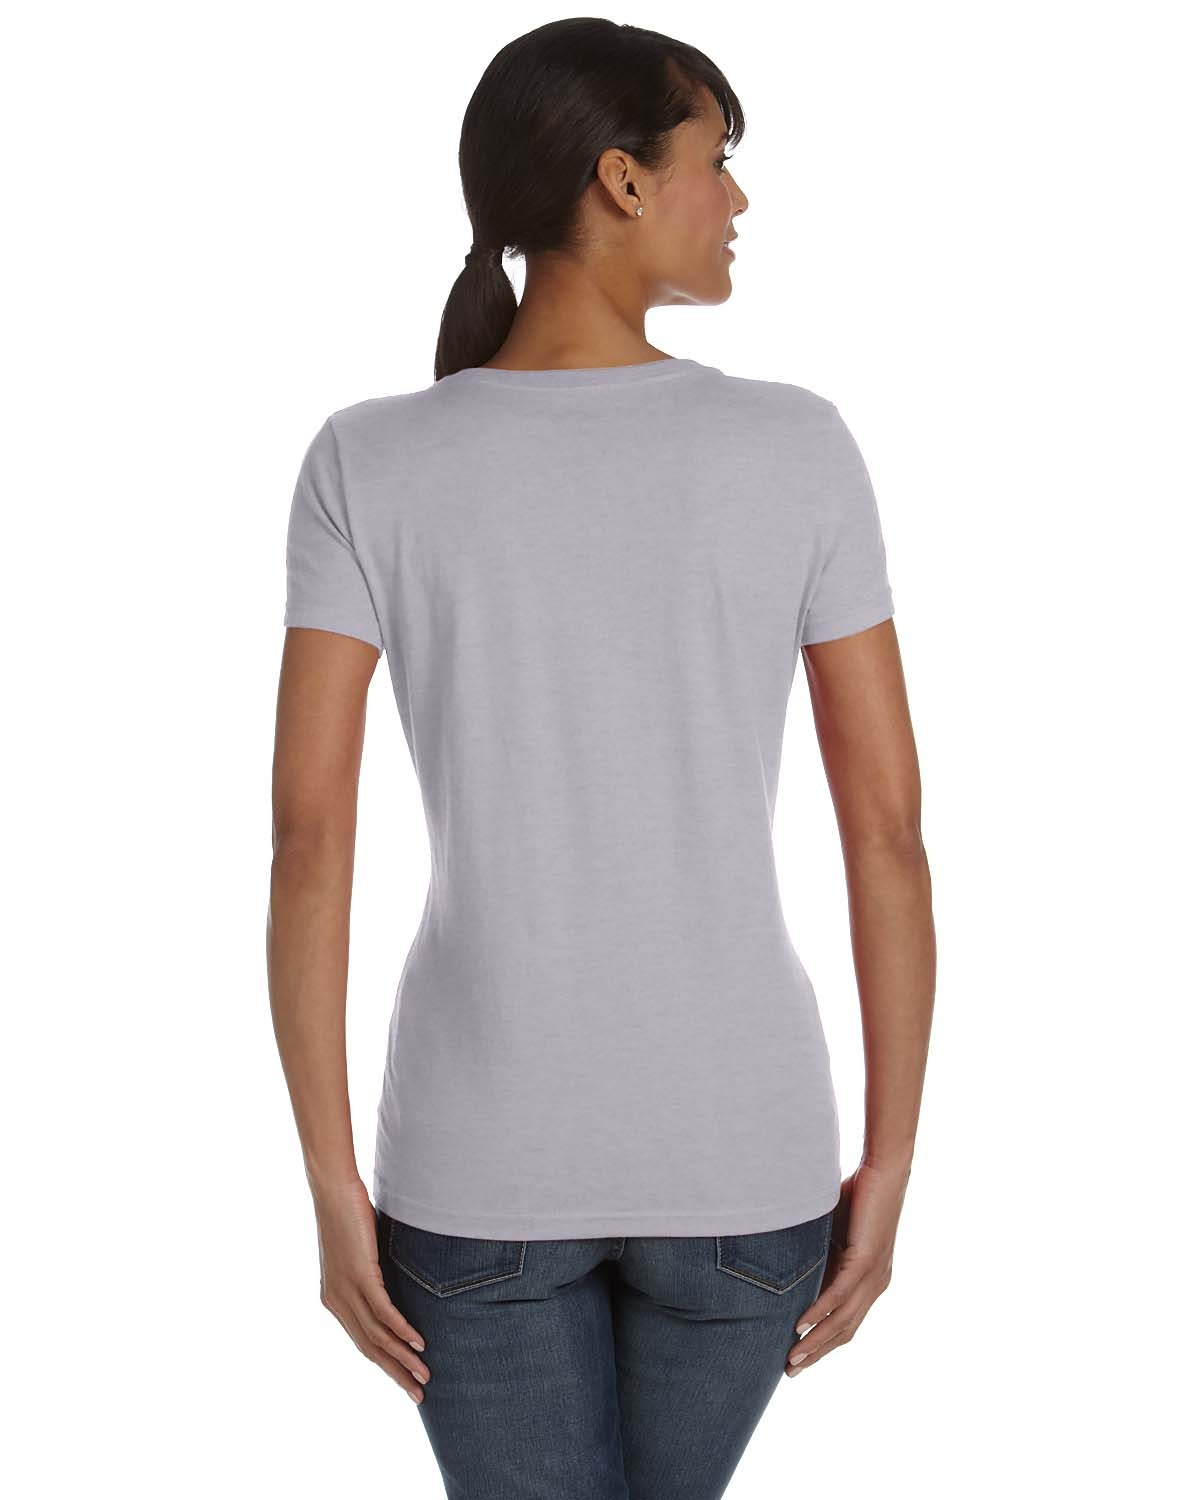 L39VR Fruit of the Loom ATHLETIC HEATHER